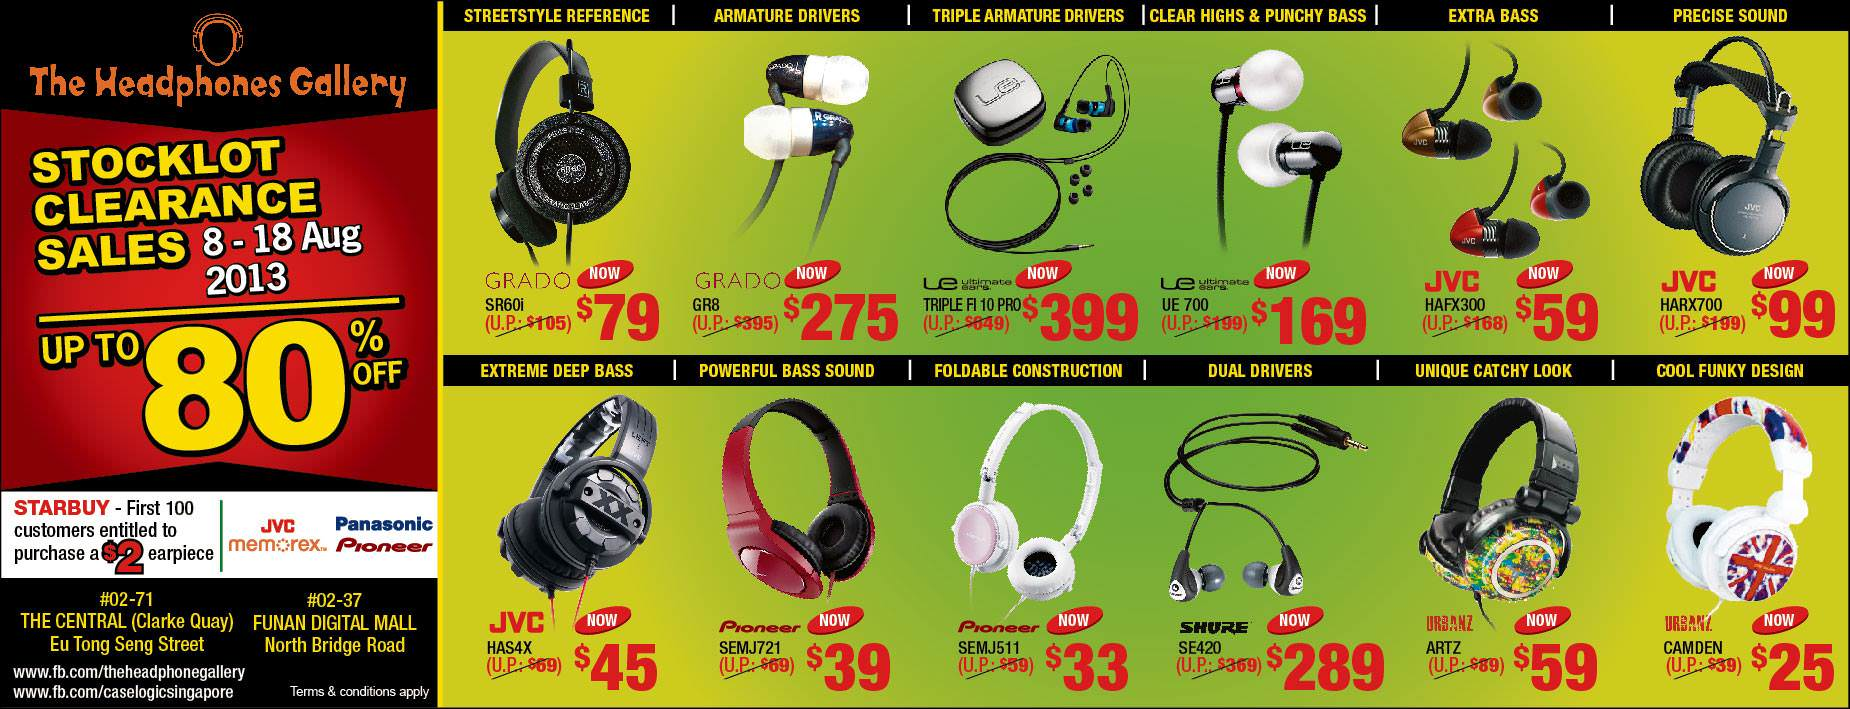 The Headphones Gallery Stock Clearance Sale, Up to 80% Discounts